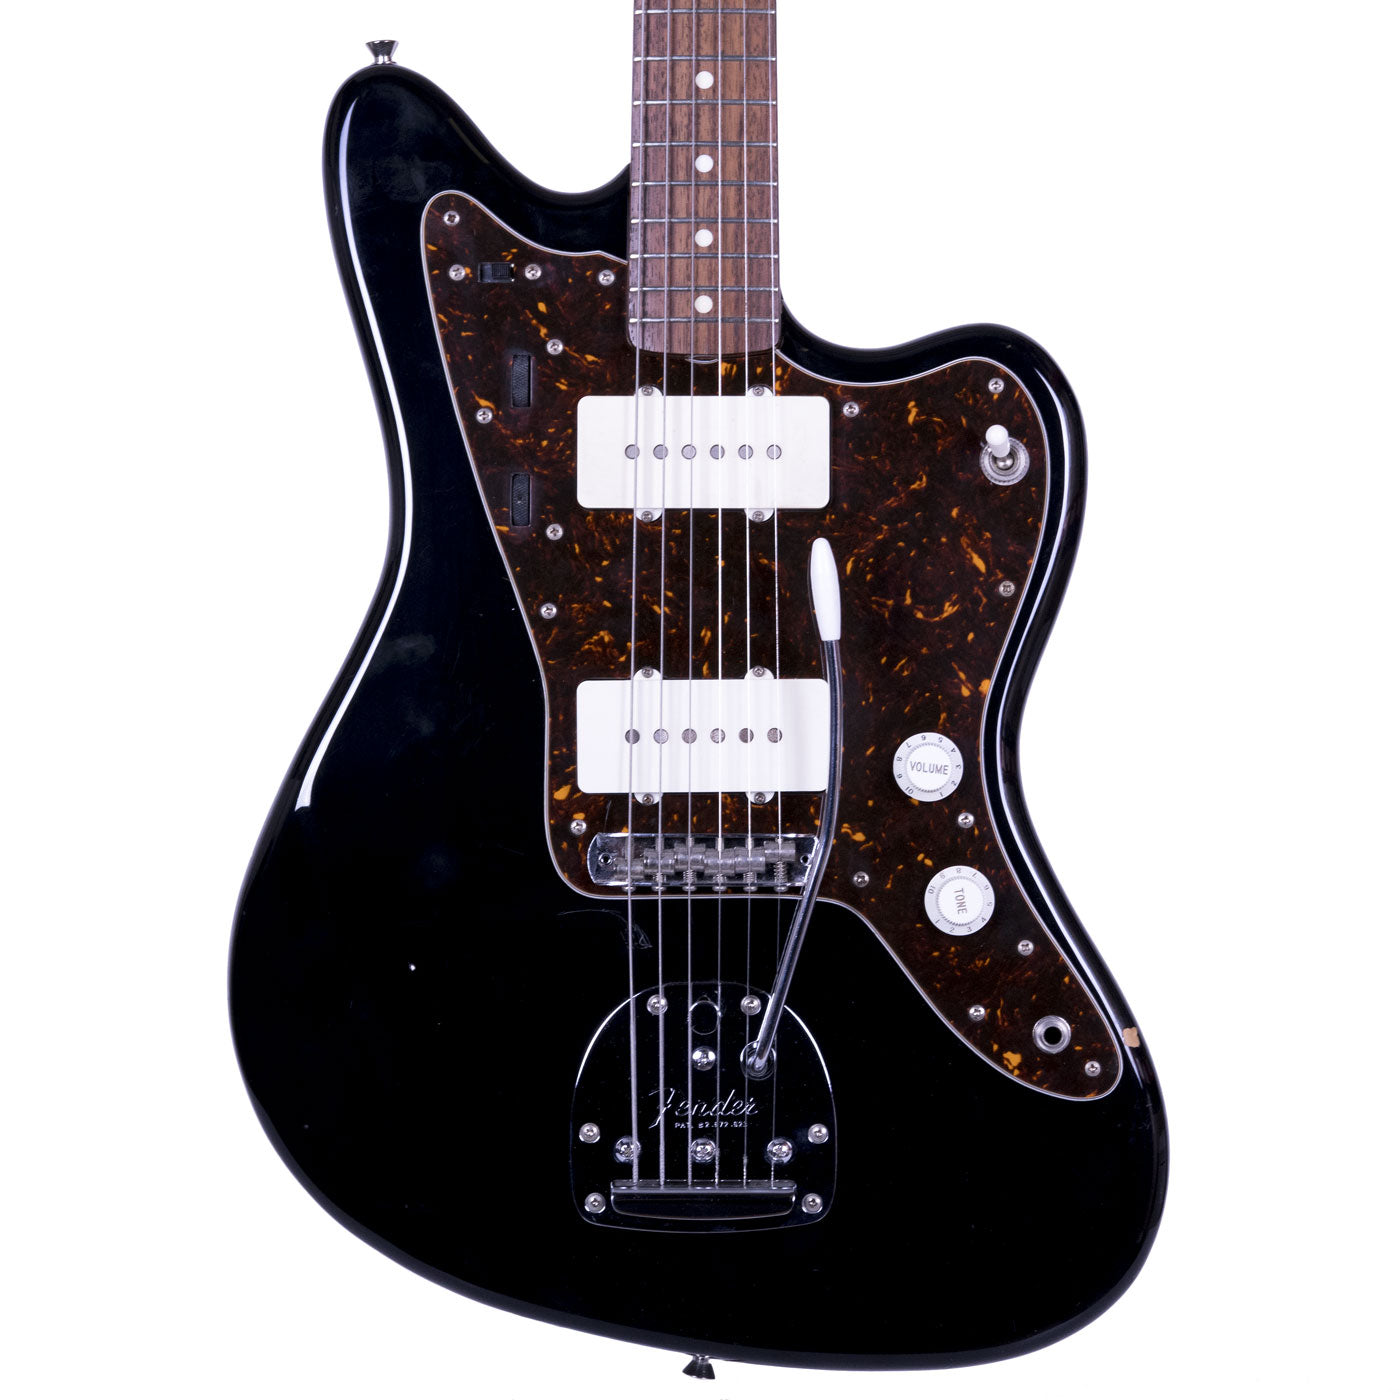 1995/'96 Fender Japan Jazzmaster JM66, MIJ, Black